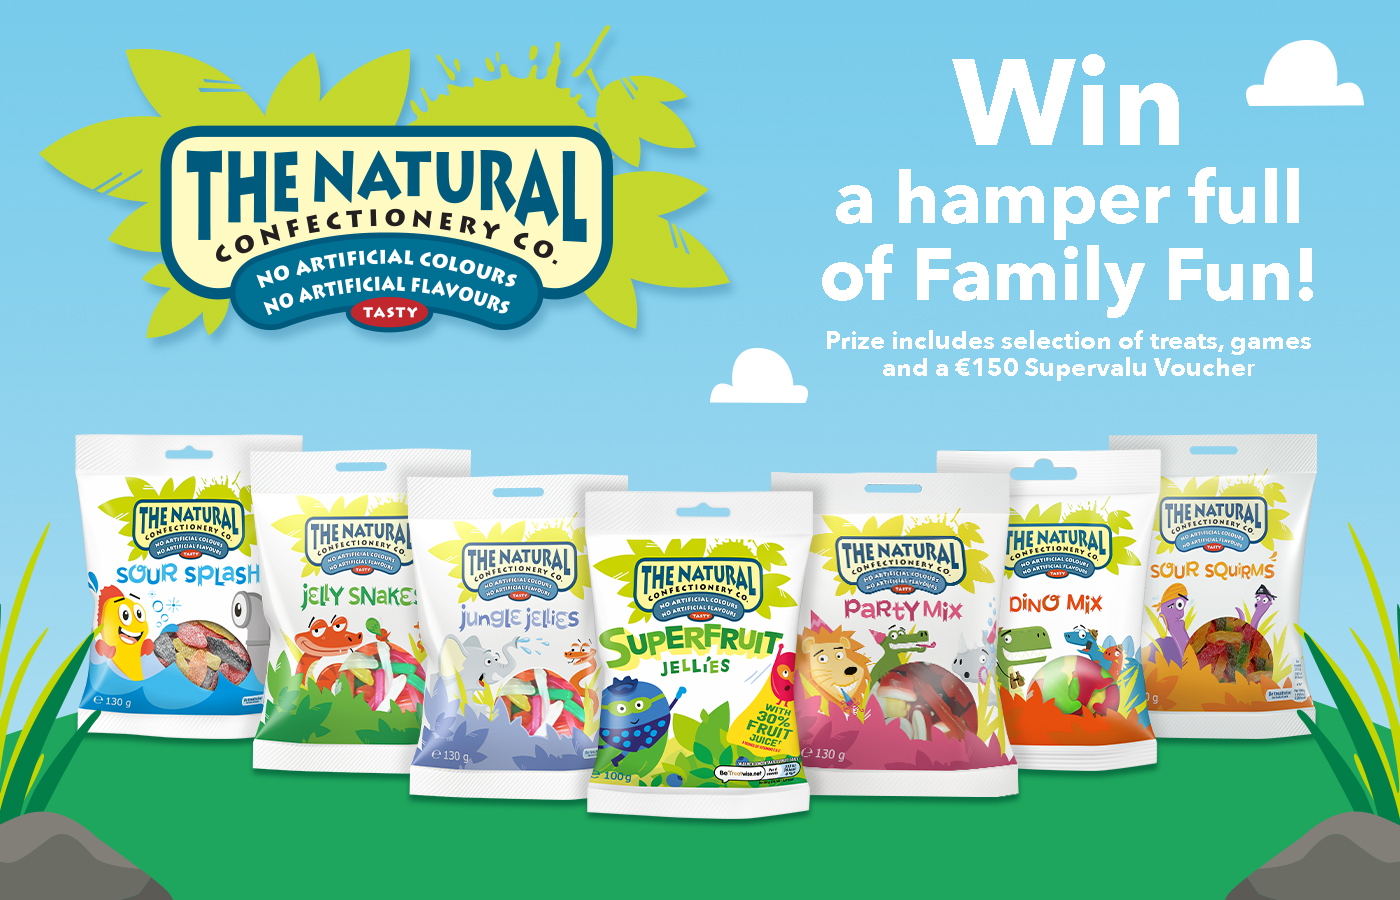 Win with The Natural Confectionary Company